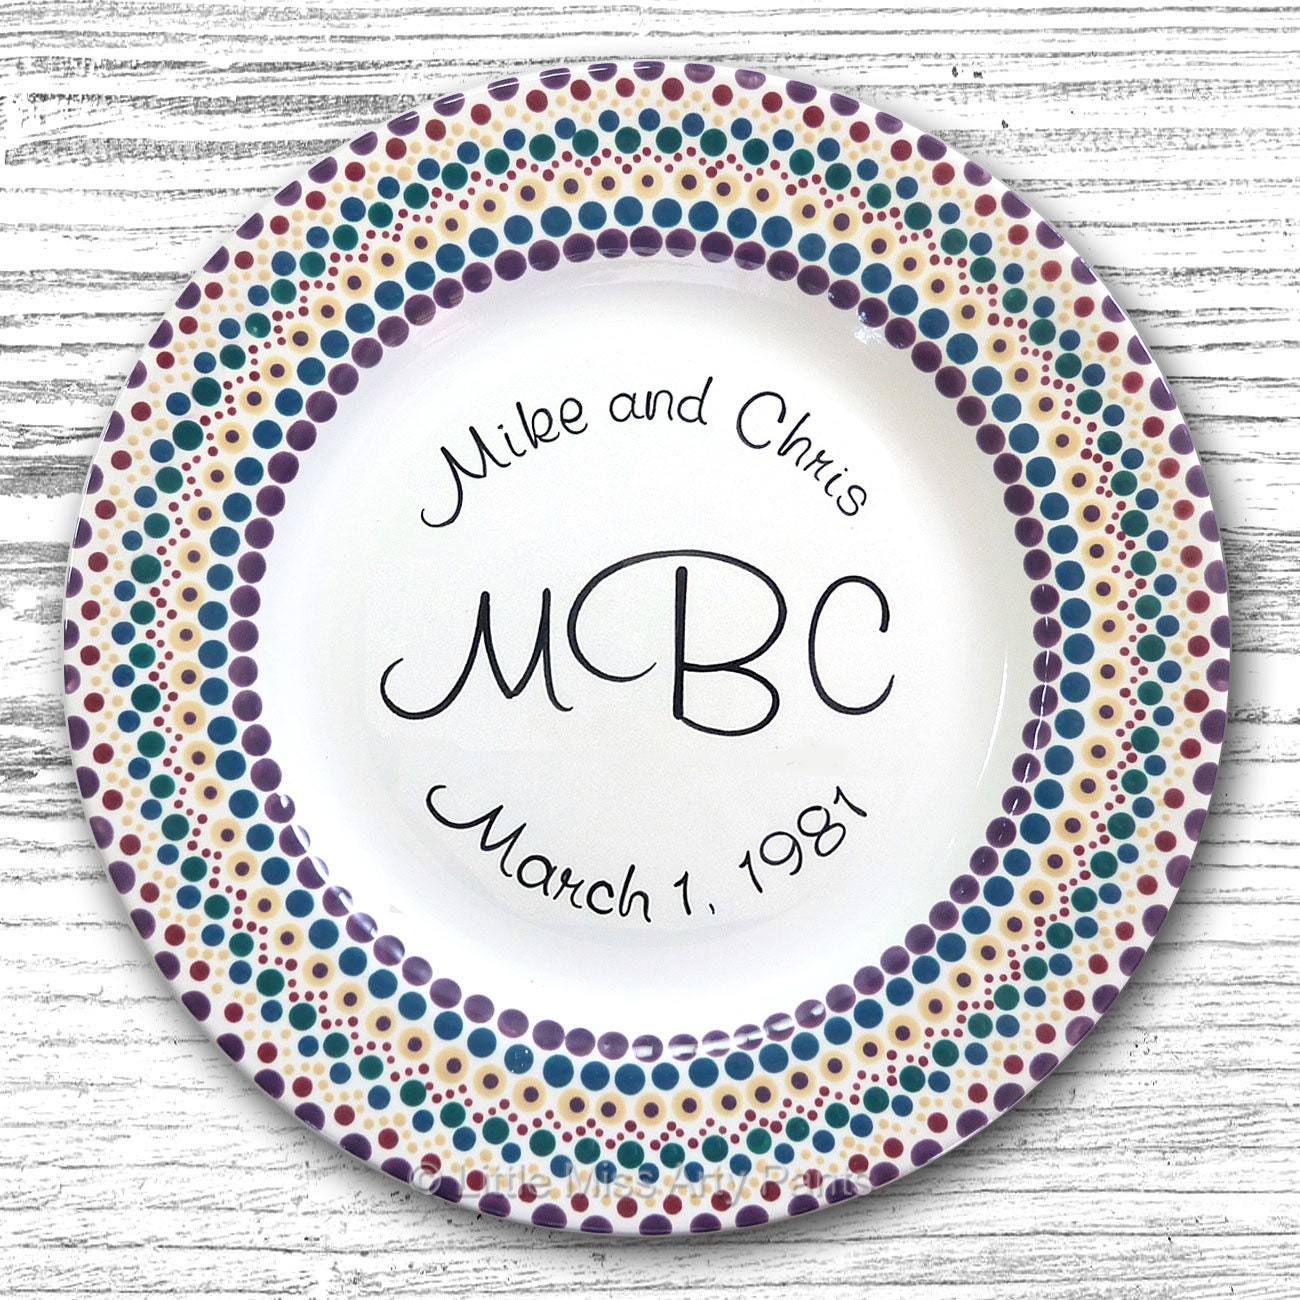 Personalized Wedding Plates Hand Painted Ceramic Wedding Plate